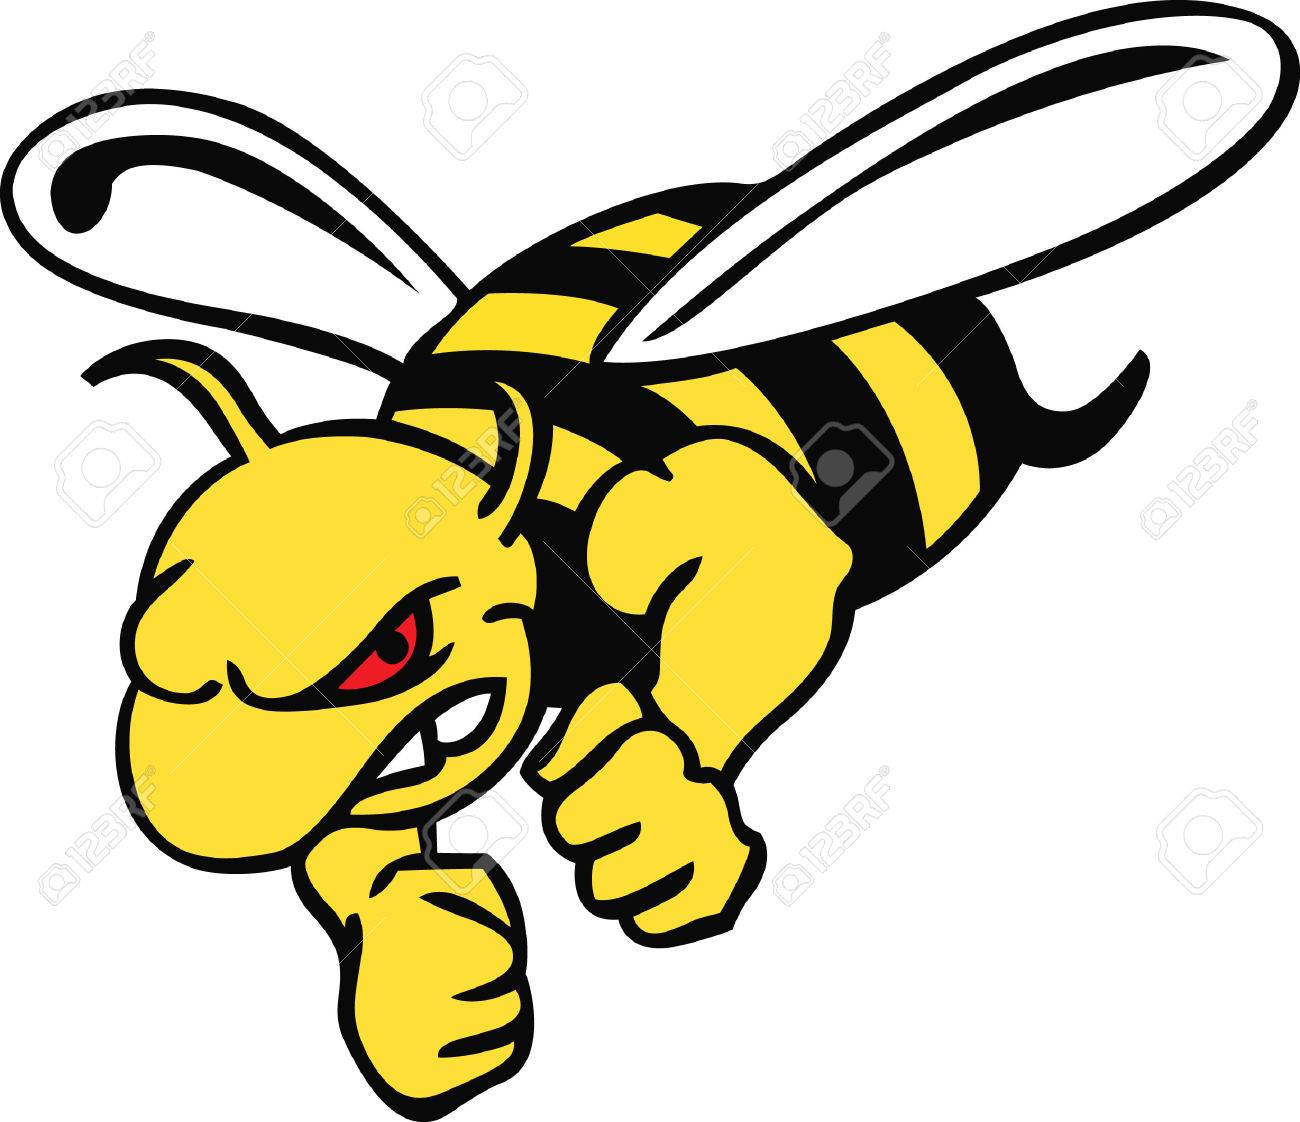 Show your team spirit with this hornet logo. Everyone will love it! - 45194955